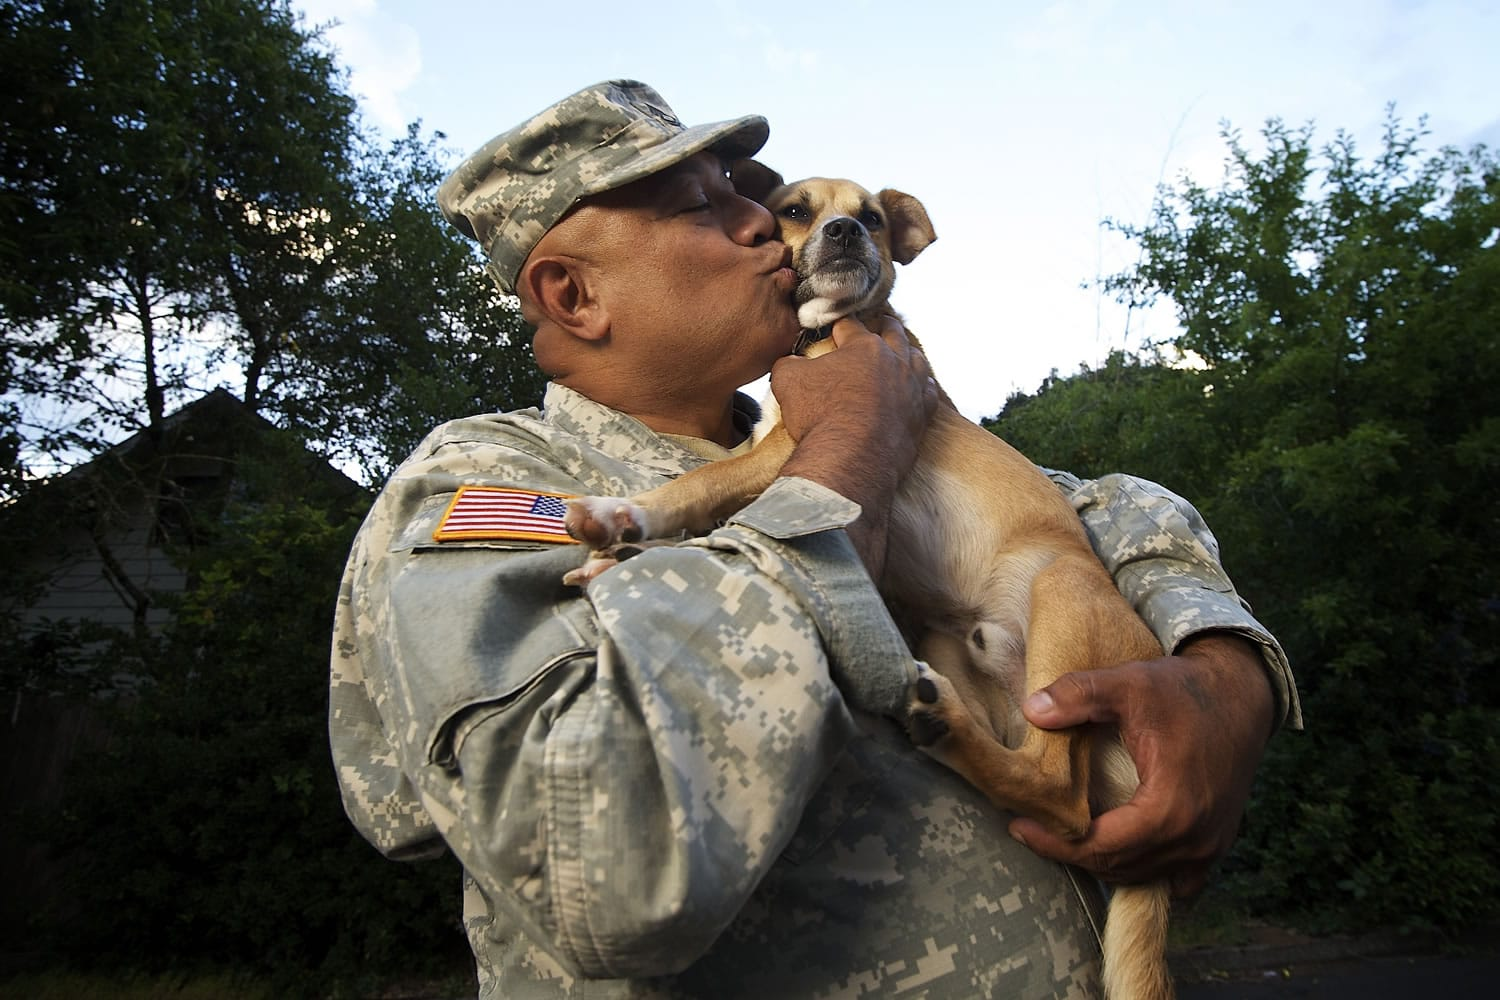 Sgt. 1st Class Bennett Muasau kisses his wayward dog Brownie, who became somewhat of a celebrity Monday after getting rescued from the roof of an Orchards-area house just five blocks away.